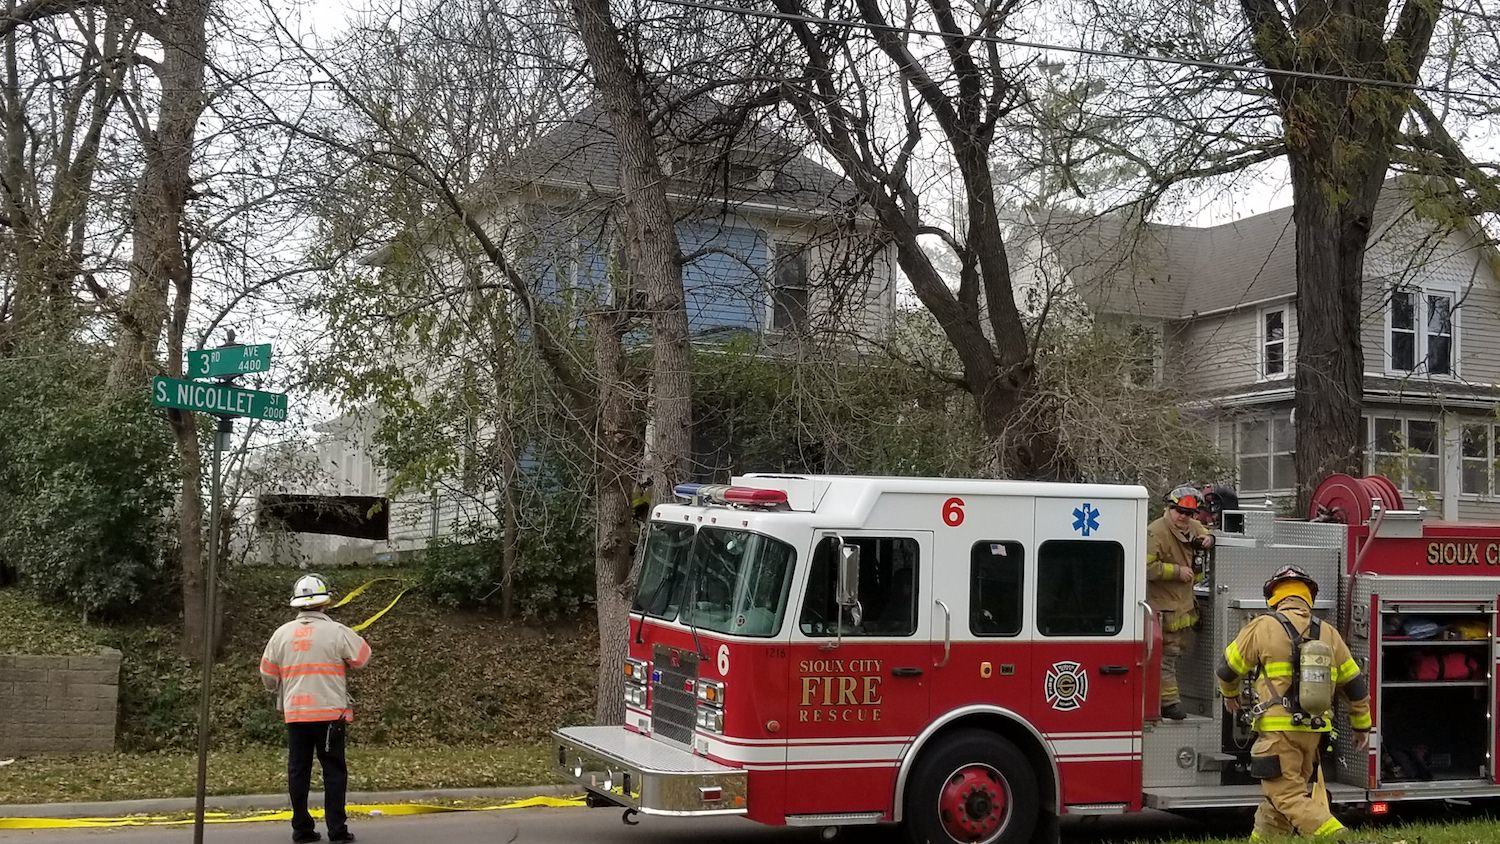 Electrical fault above 2nd floor bathroom determined to be cause of house fire at 2023 South Nicollet